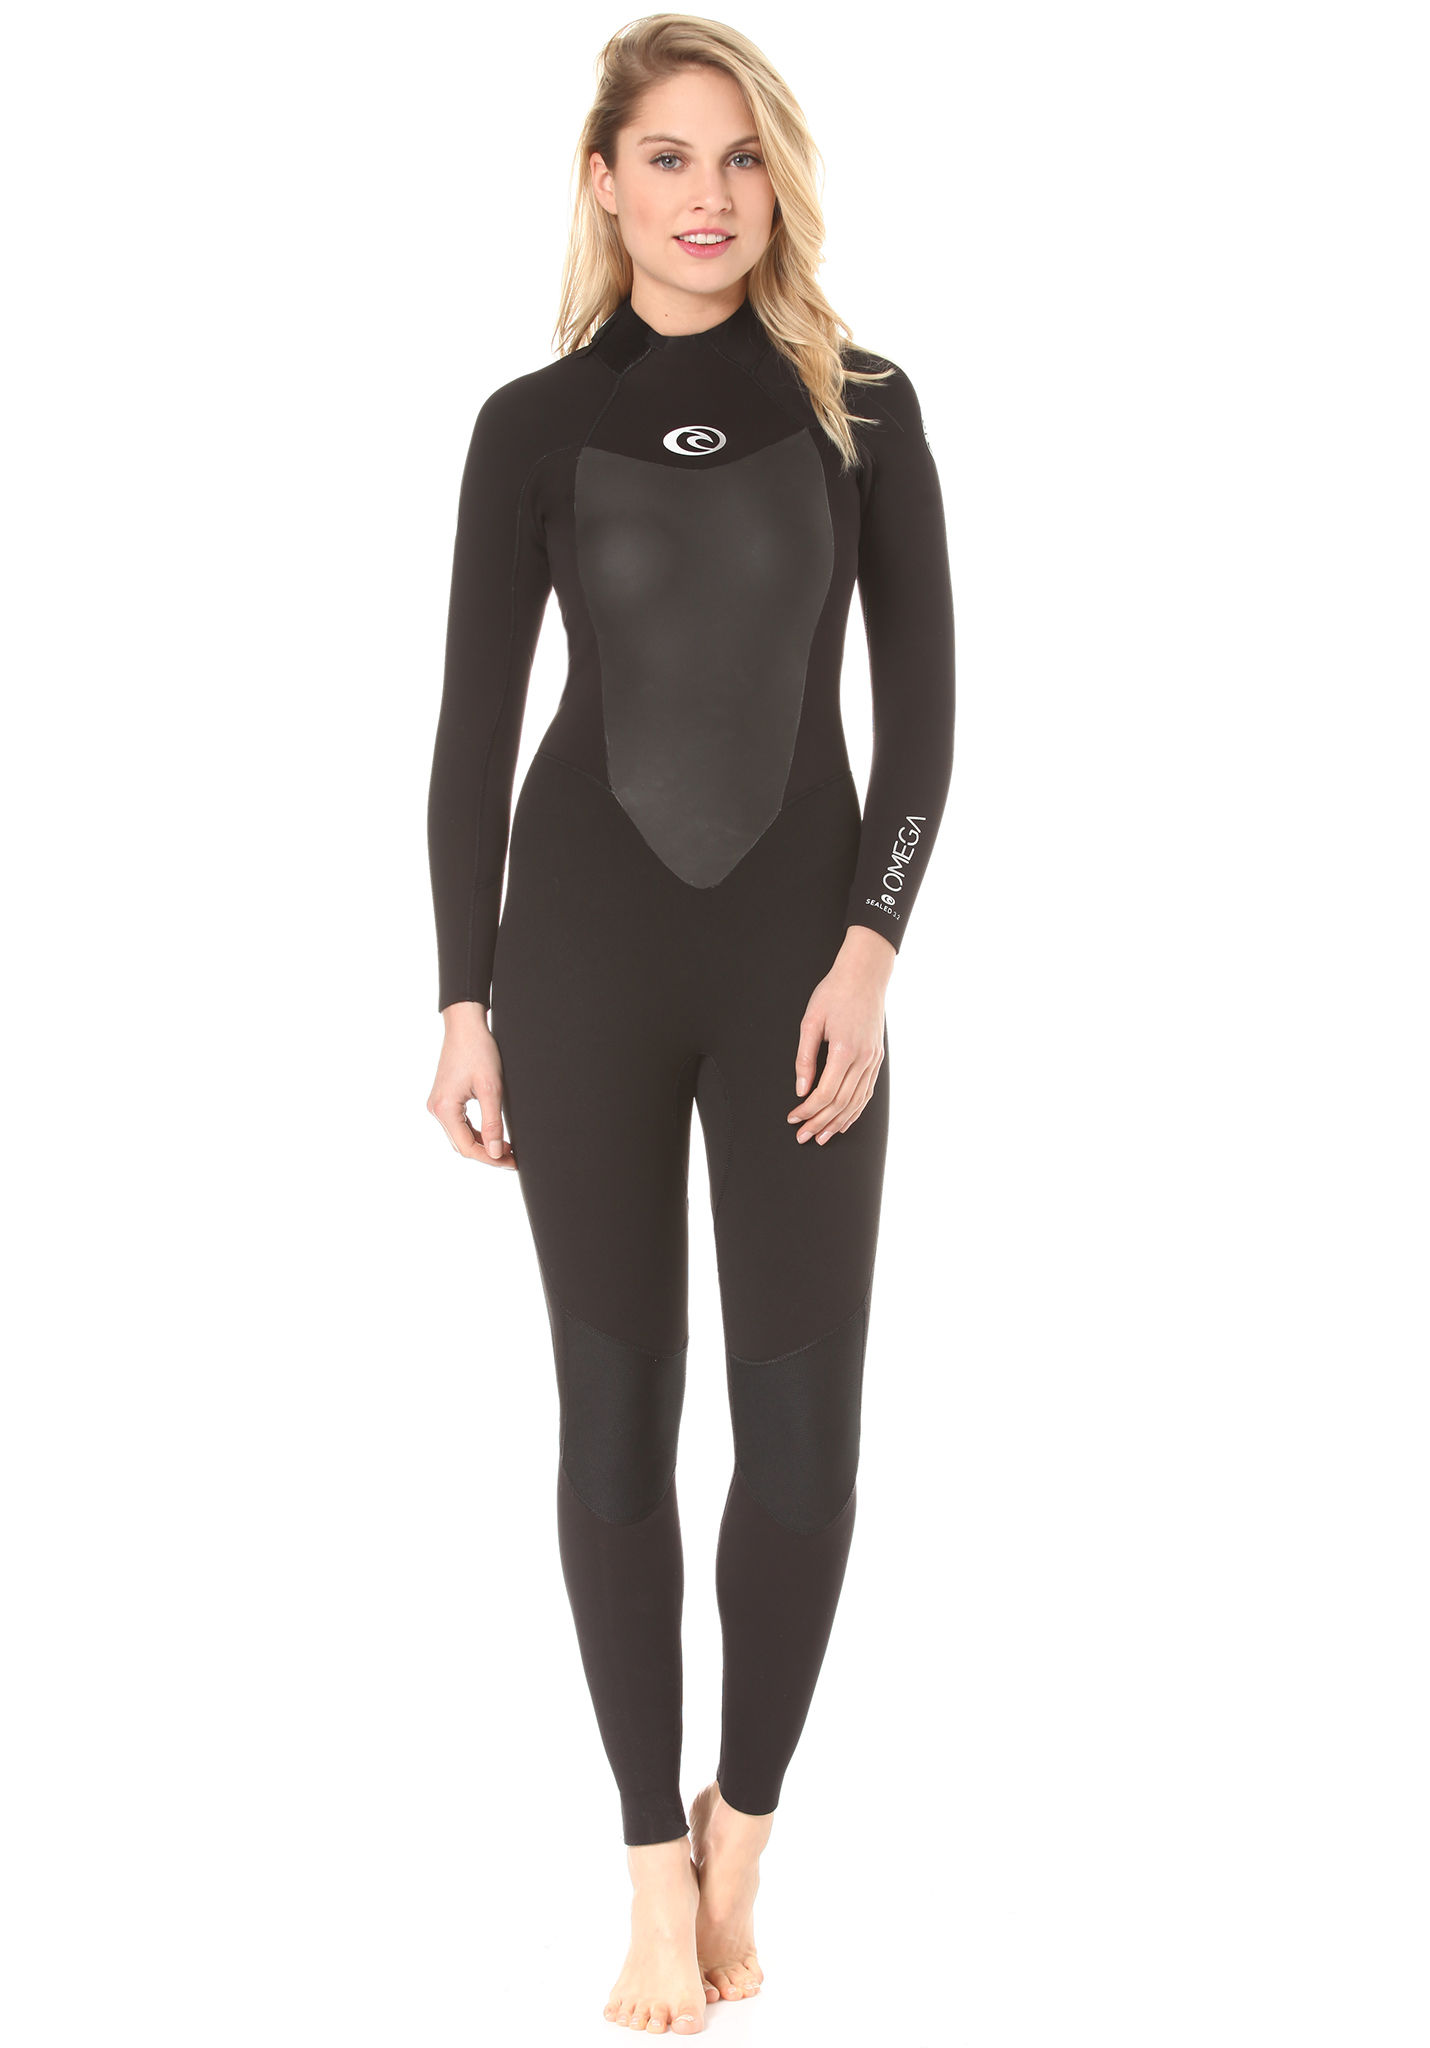 1107c77637 Rip curl omega back zip wetsuit for women black planet sports jpg 1430x2048 Rip  curl wetsuits